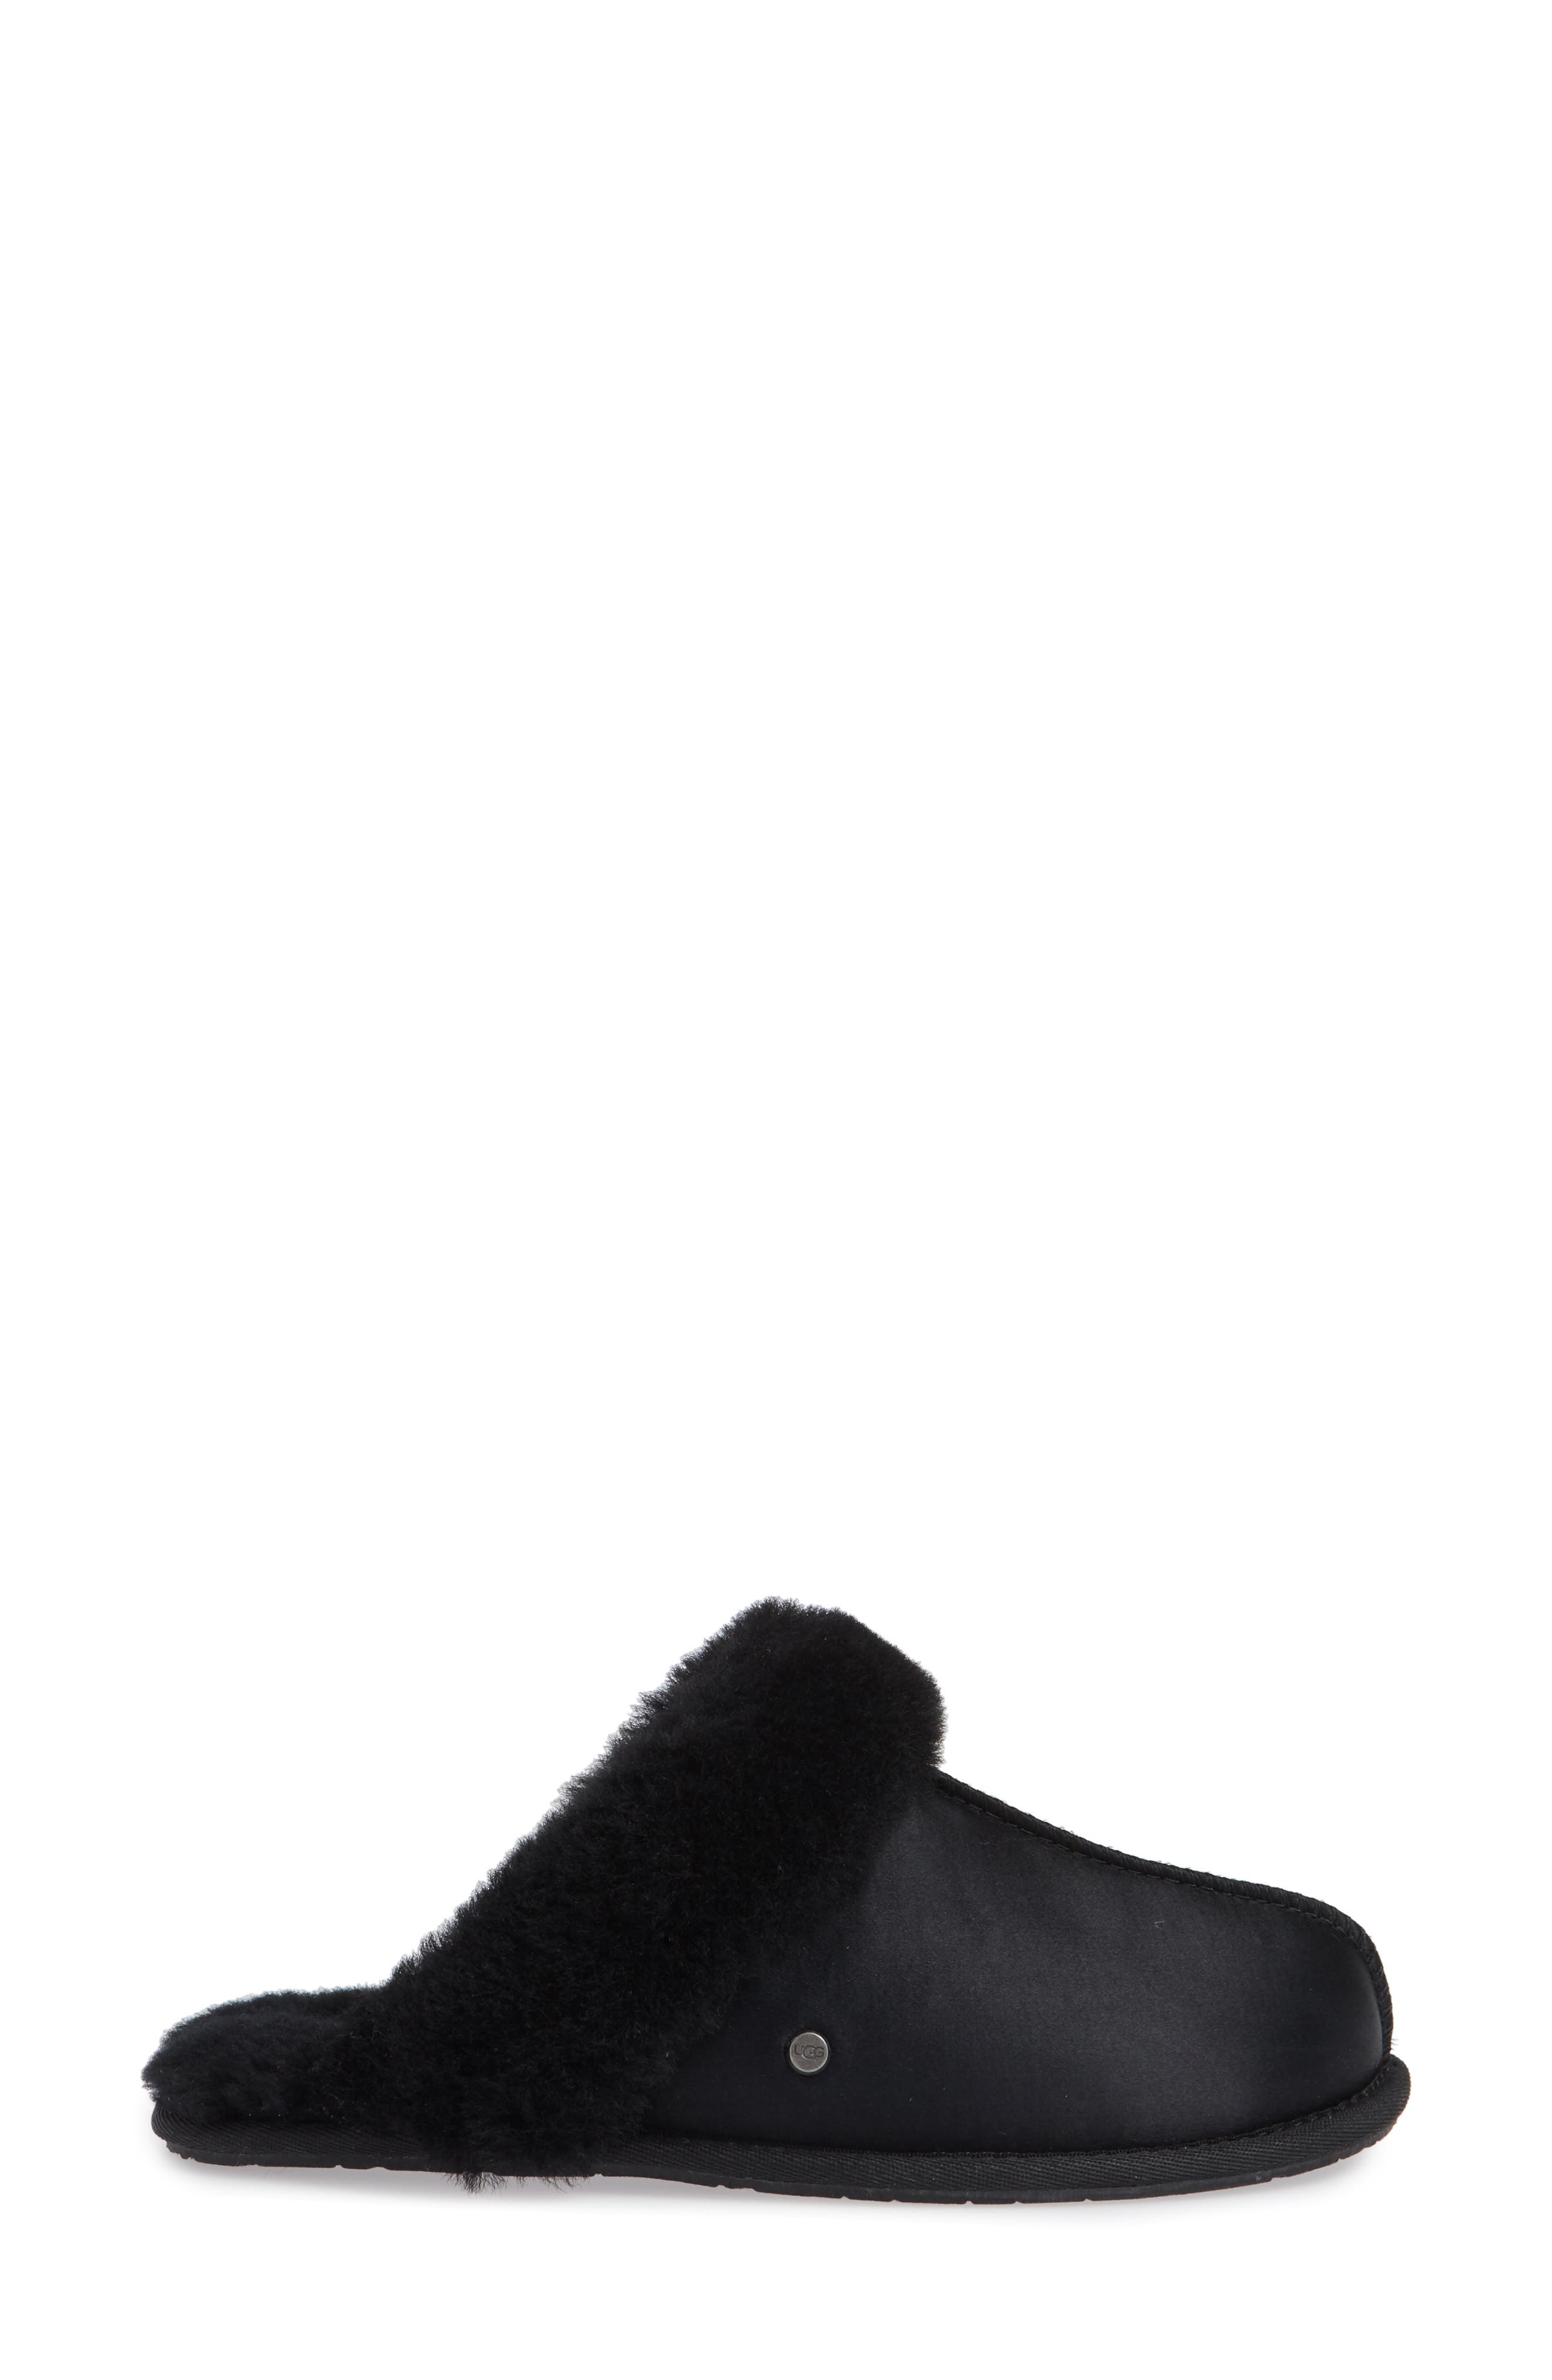 UGG<SUP>®</SUP>, Scuffette II Satin Slipper, Alternate thumbnail 3, color, 001